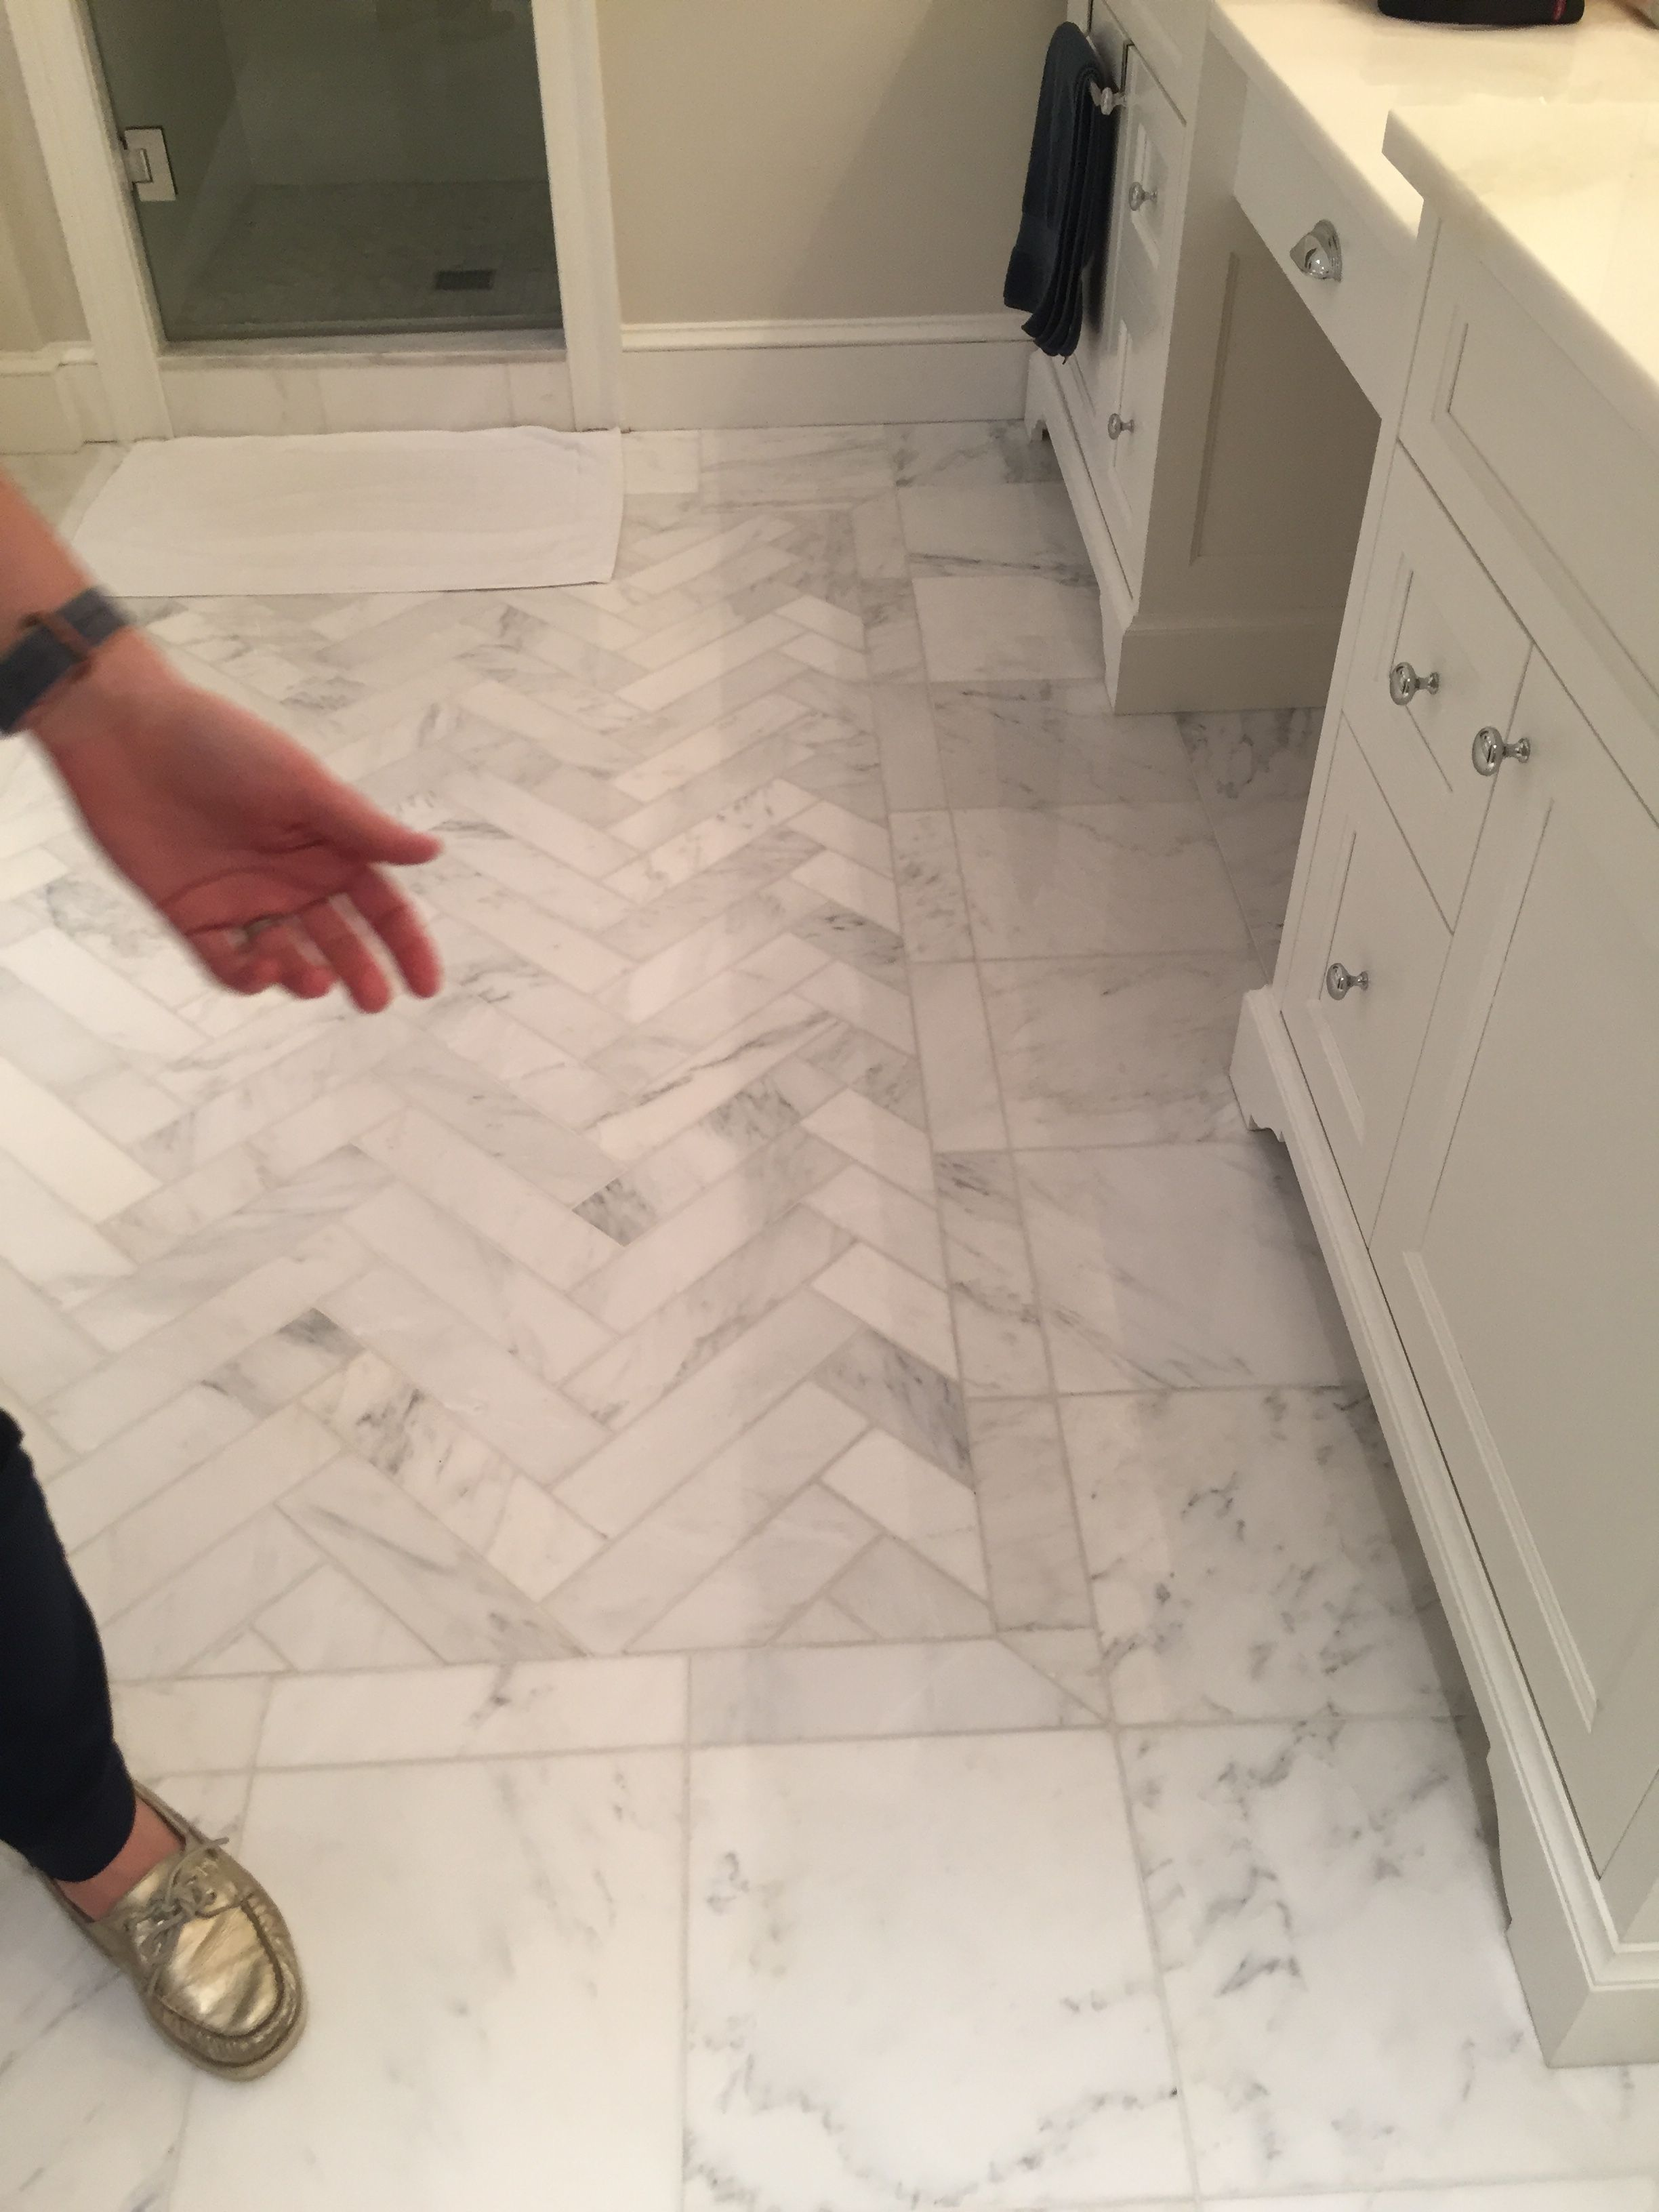 Herringbone Pattern Inset Surrounded By 12x12 White Carrara Floor Tiles Bathroom Floor Tile Patterns Floor Tile Patterns Entryway Patterned Floor Tiles